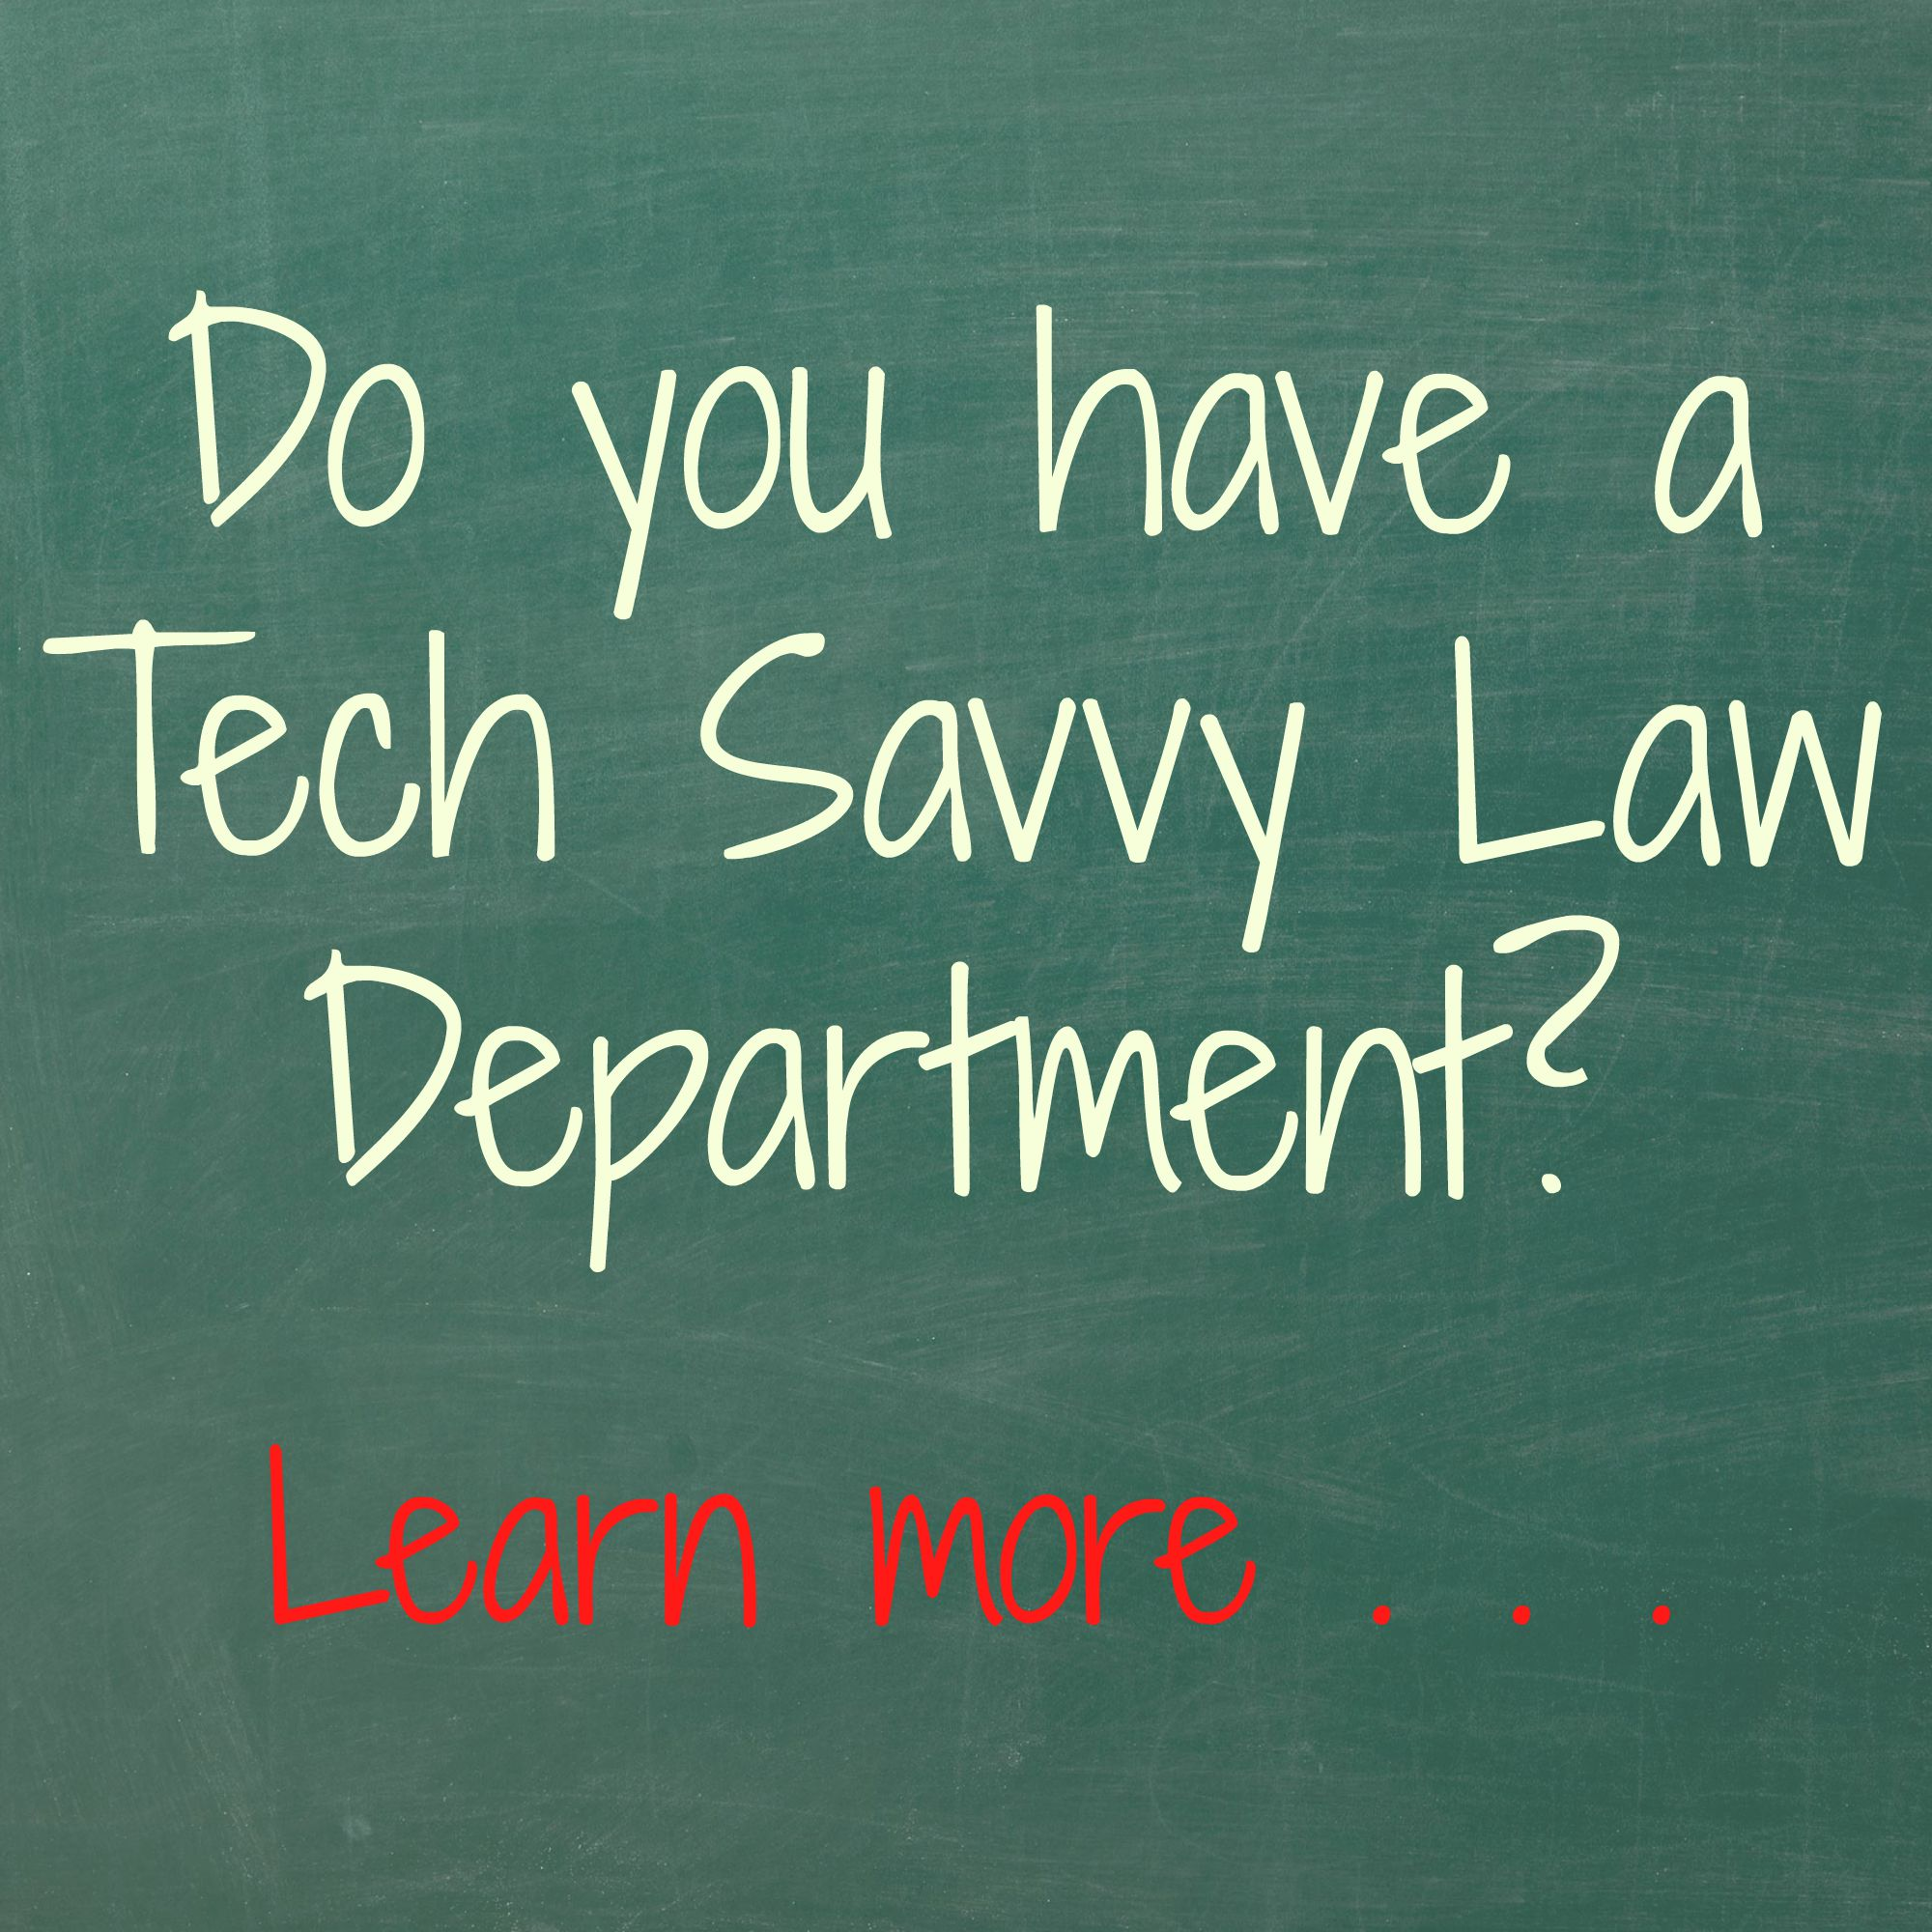 Tech Savvy Law Department